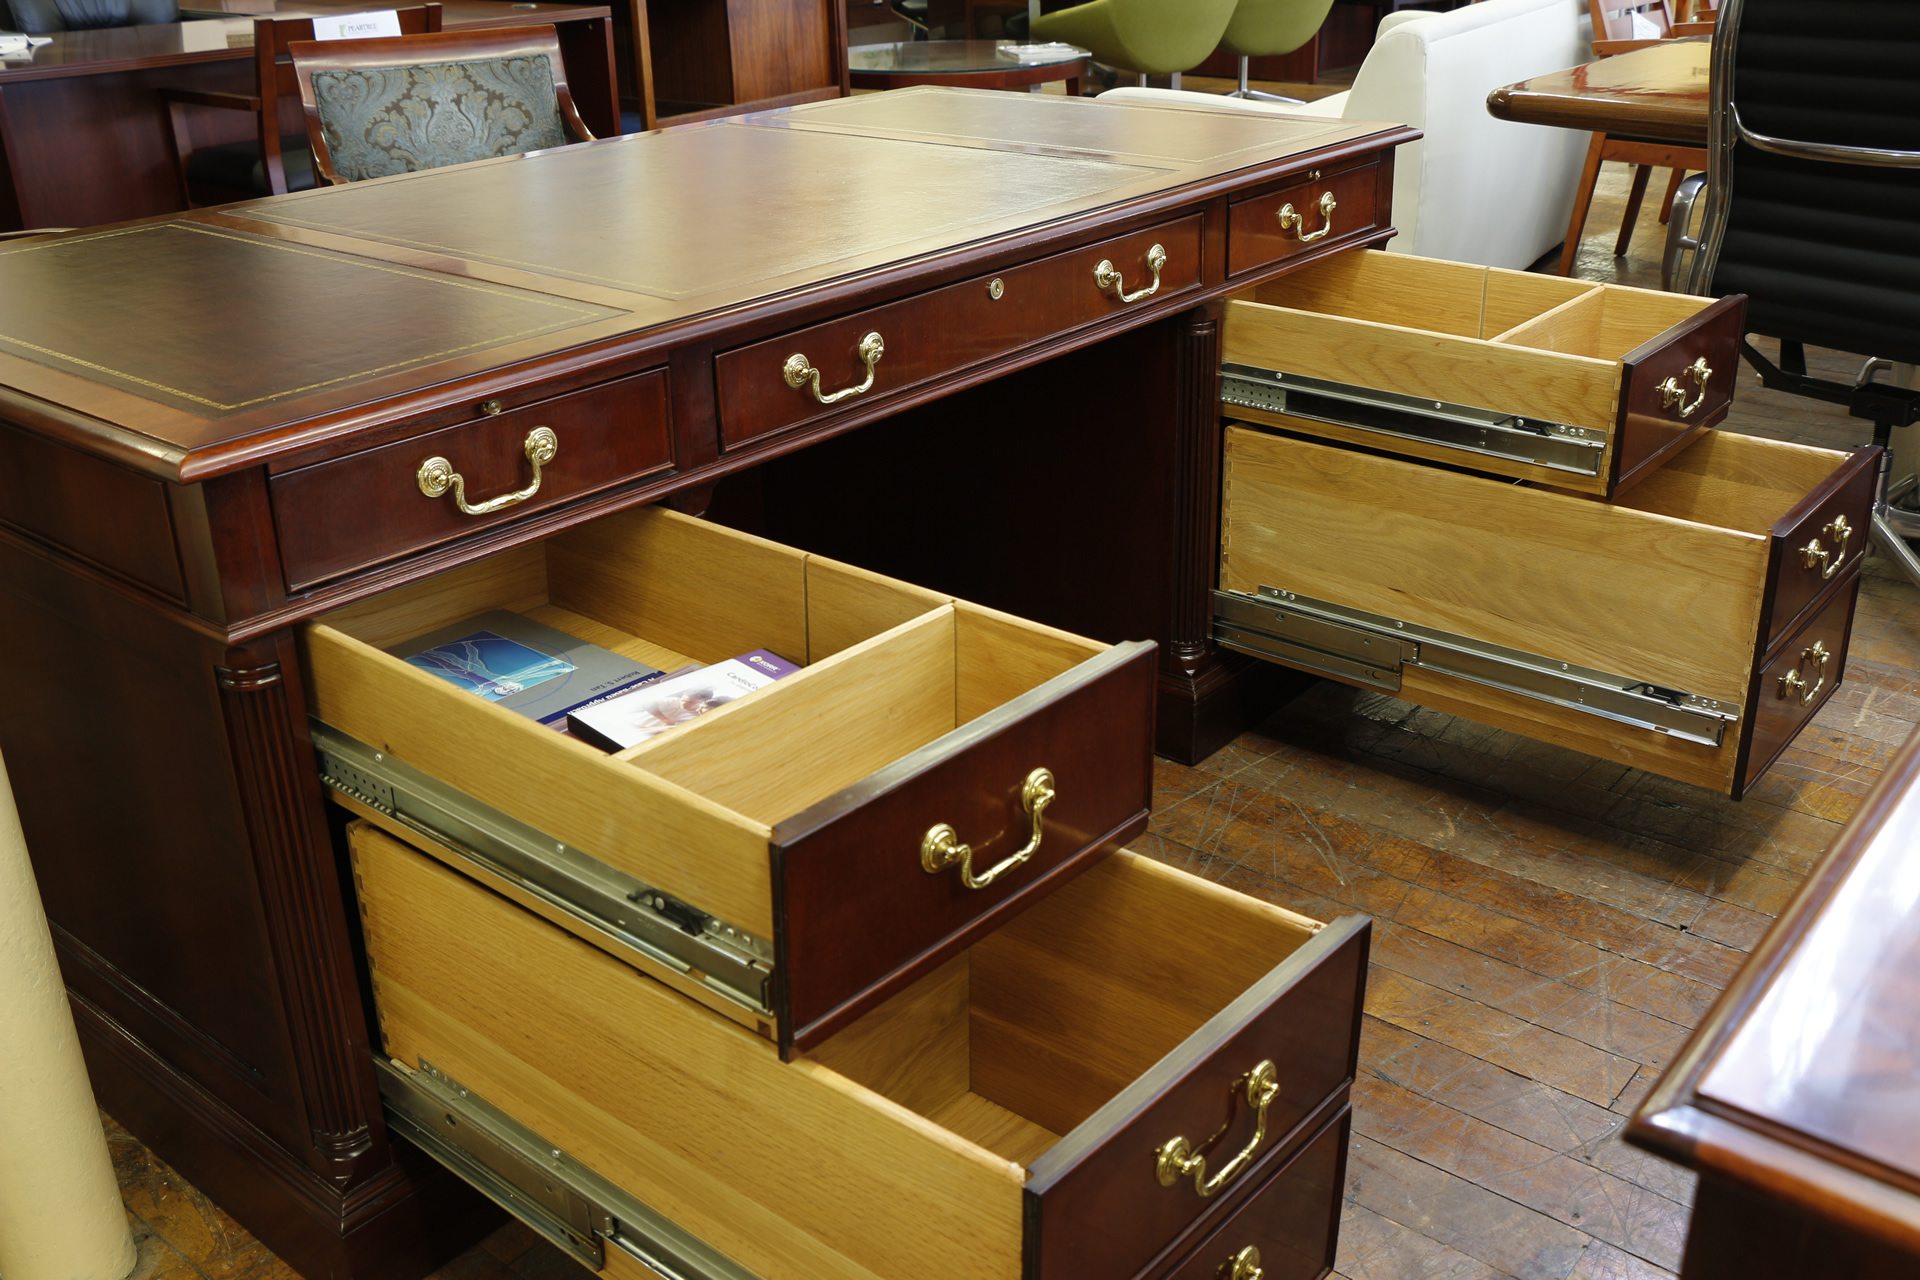 peartreeofficefurniture_peartreeofficefurniture_mg_4235.jpg